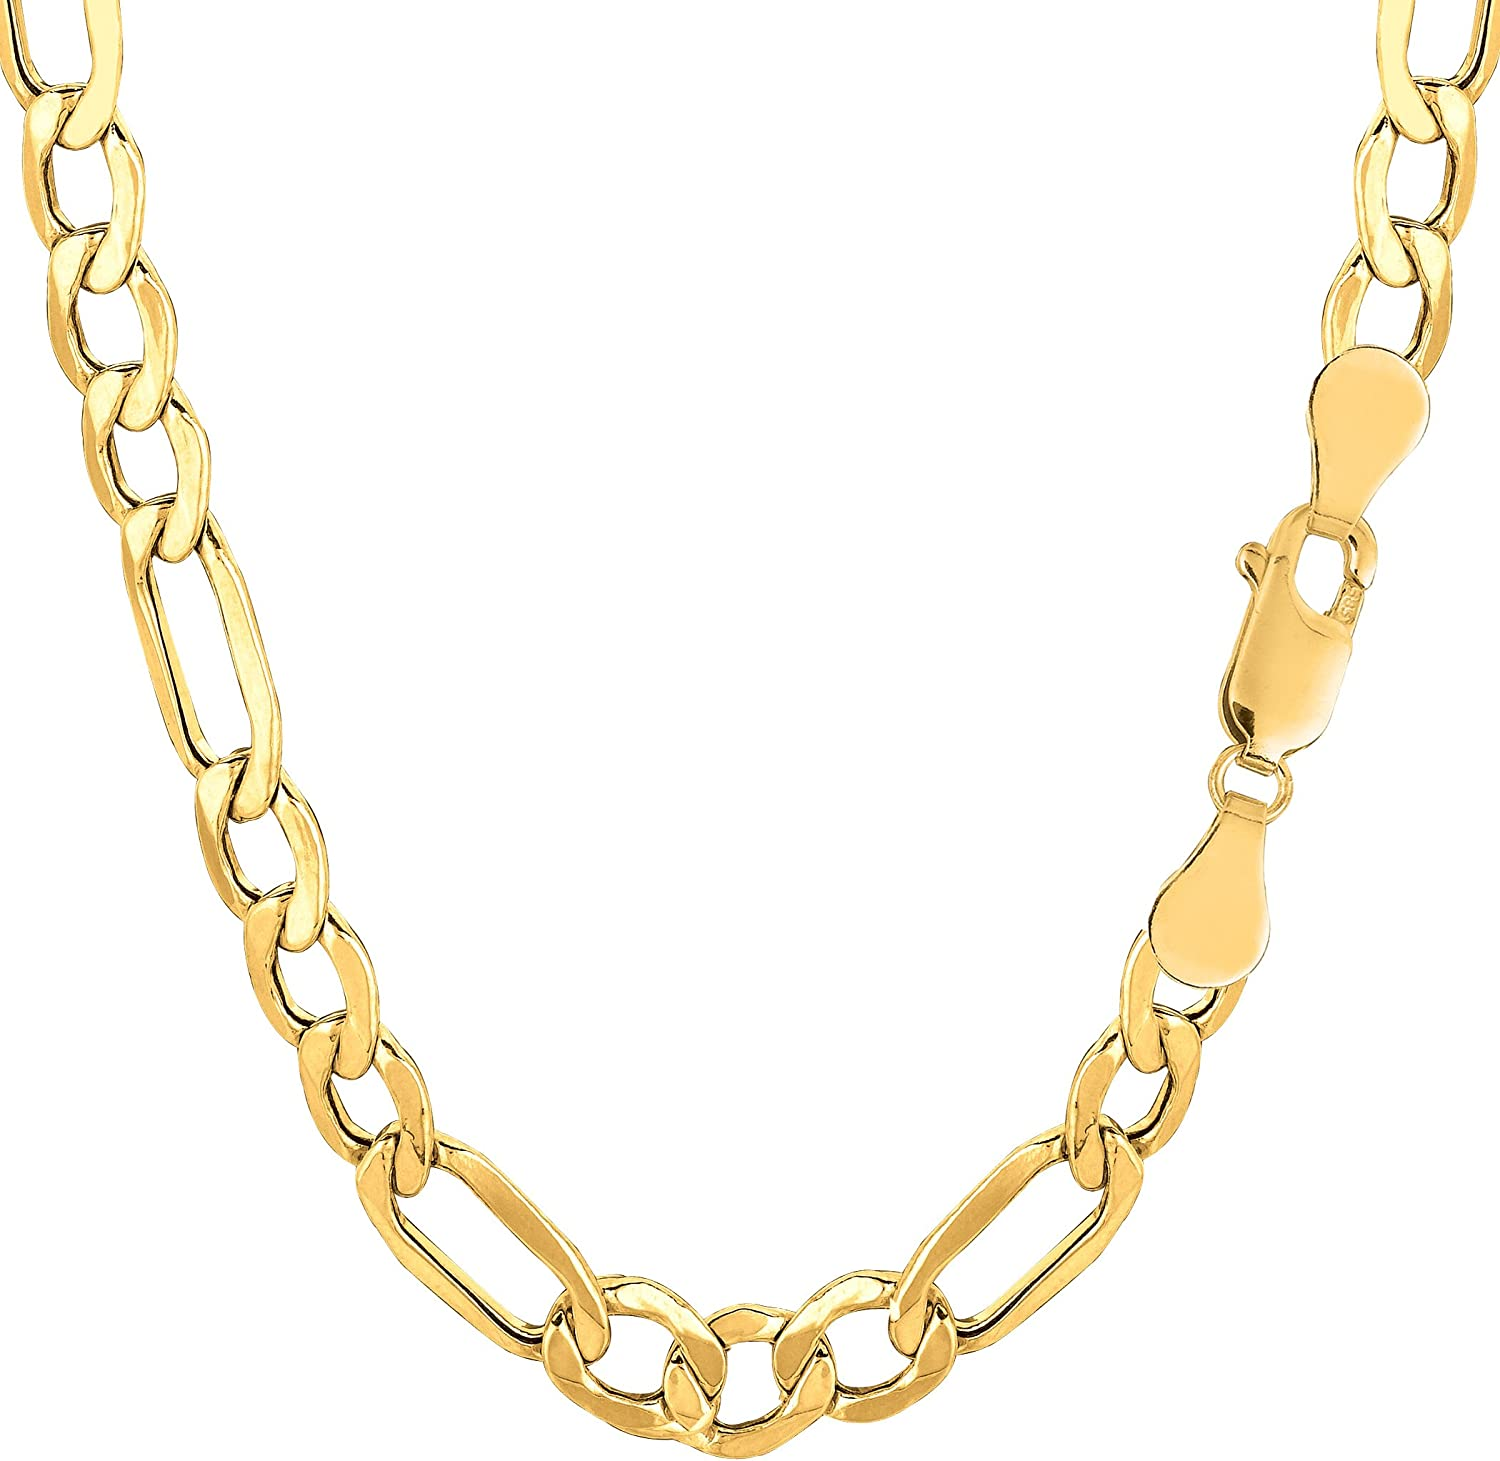 14K Yellow Gold Filled Solid Figaro Chain Necklace, 6.0 mm Wide